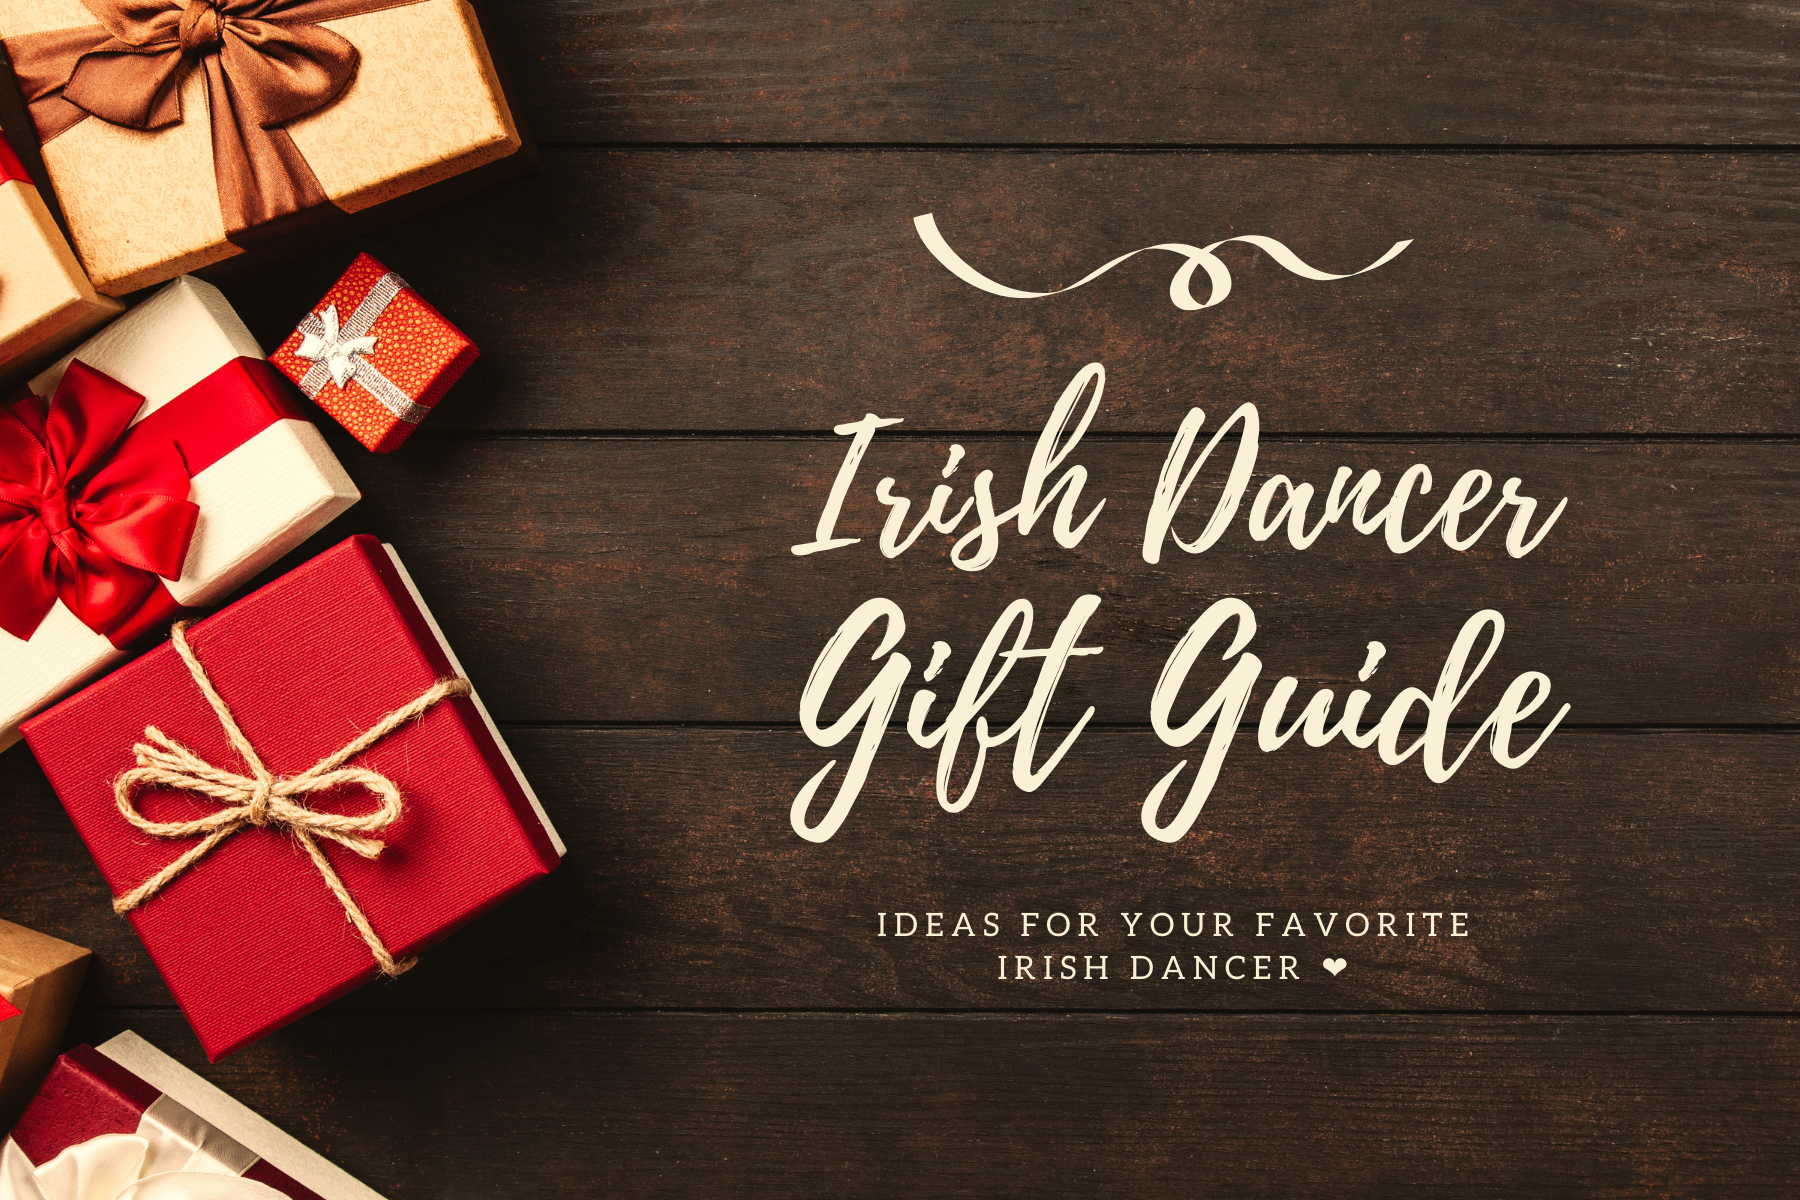 Holiday Gift Guide for Irish Dancers